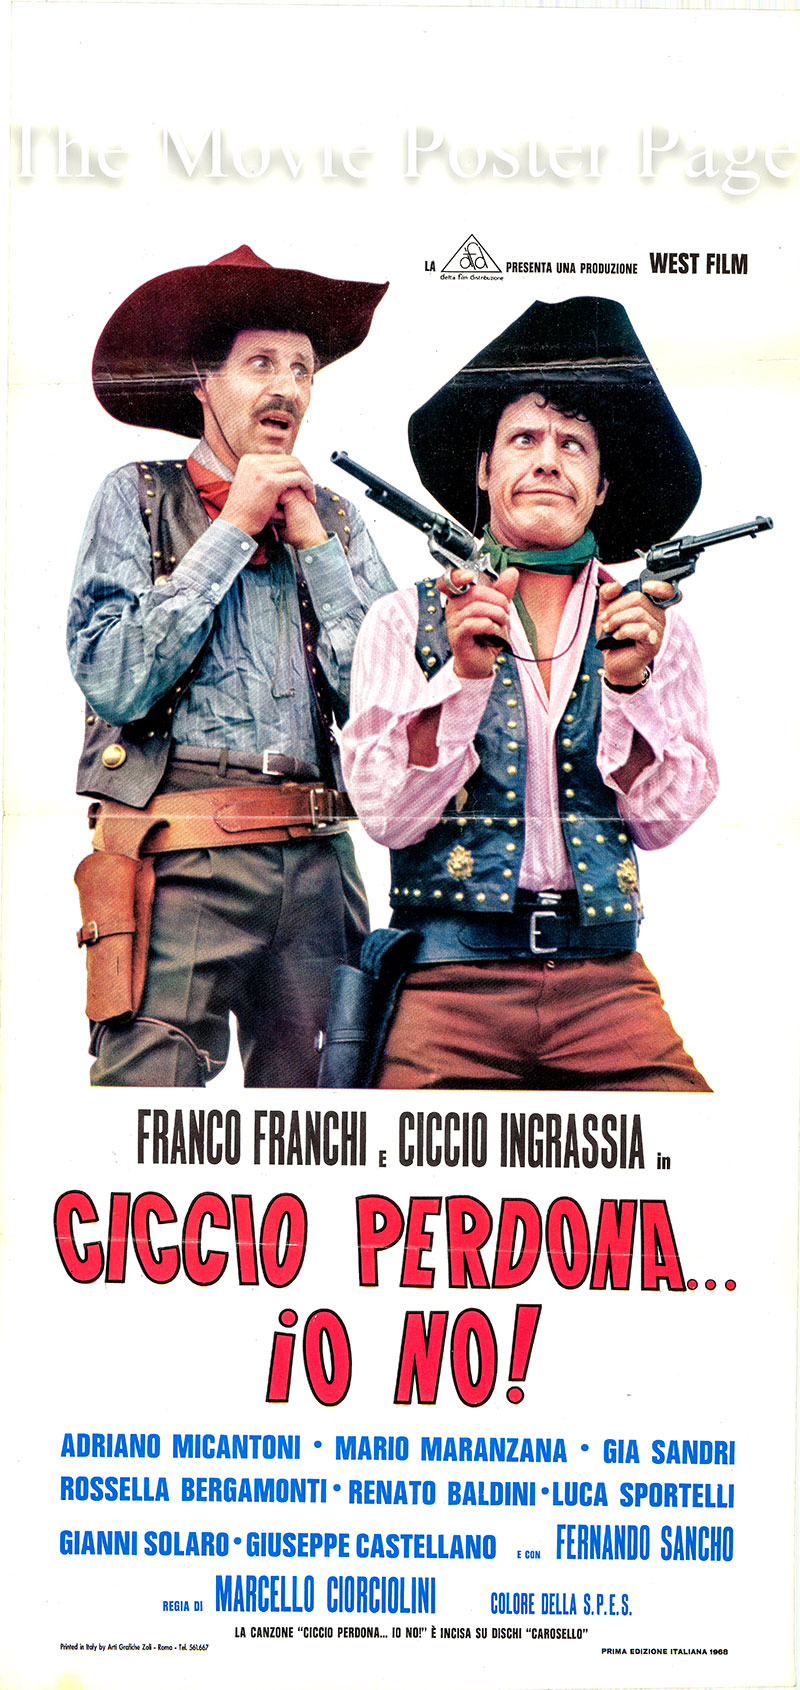 Pictured is the Italian locandina promotional poster for the 1968 Marcello Ciorciolini film starring Franco Franchi.